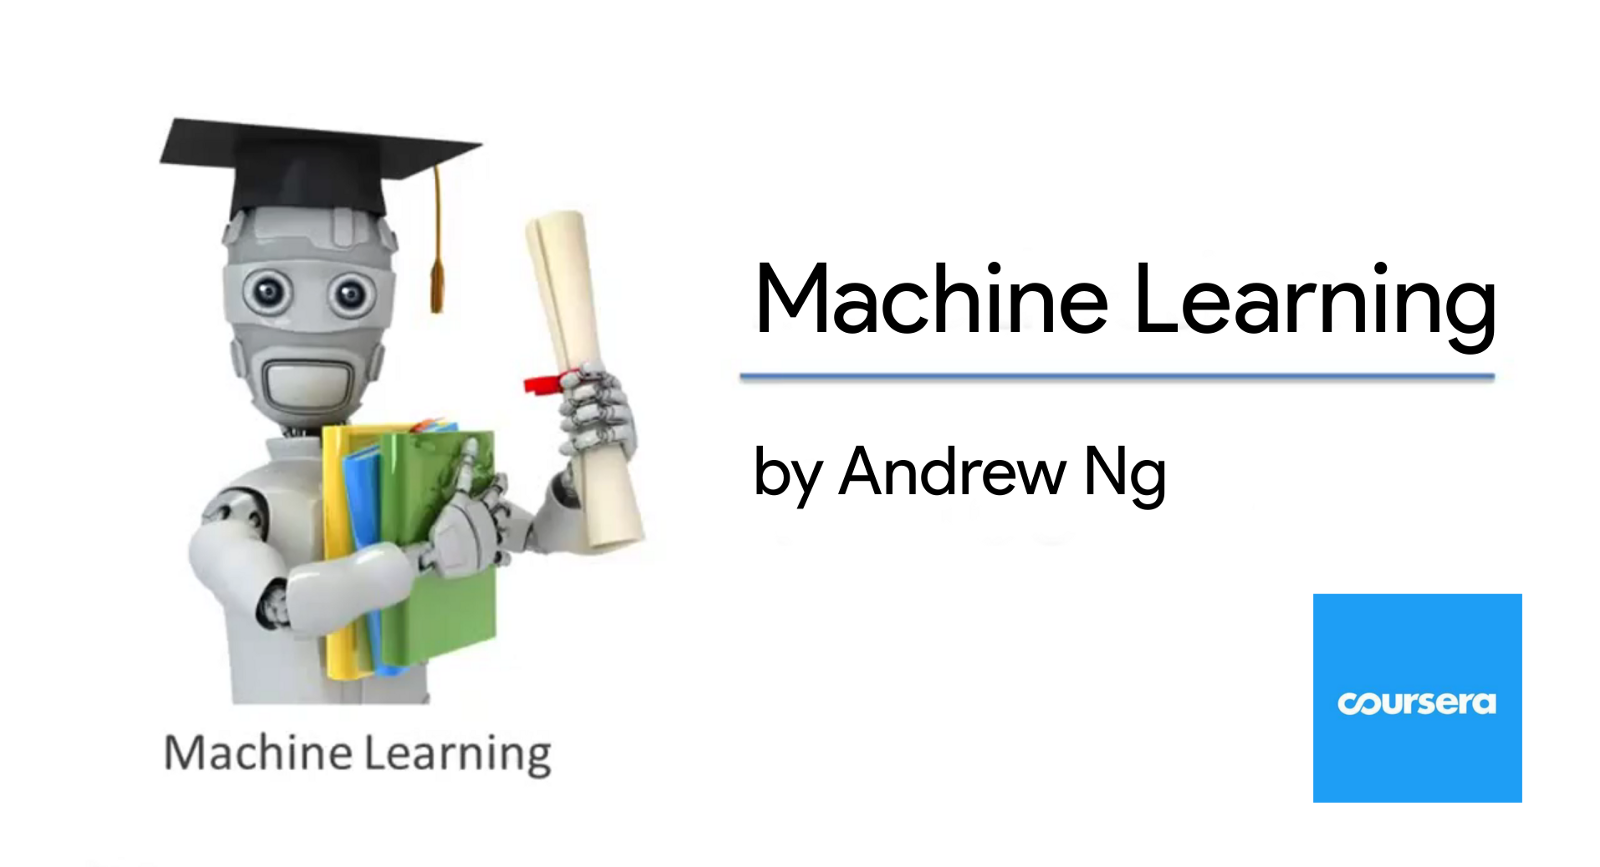 Python Implementation of Andrew Ng's Machine Learning Course